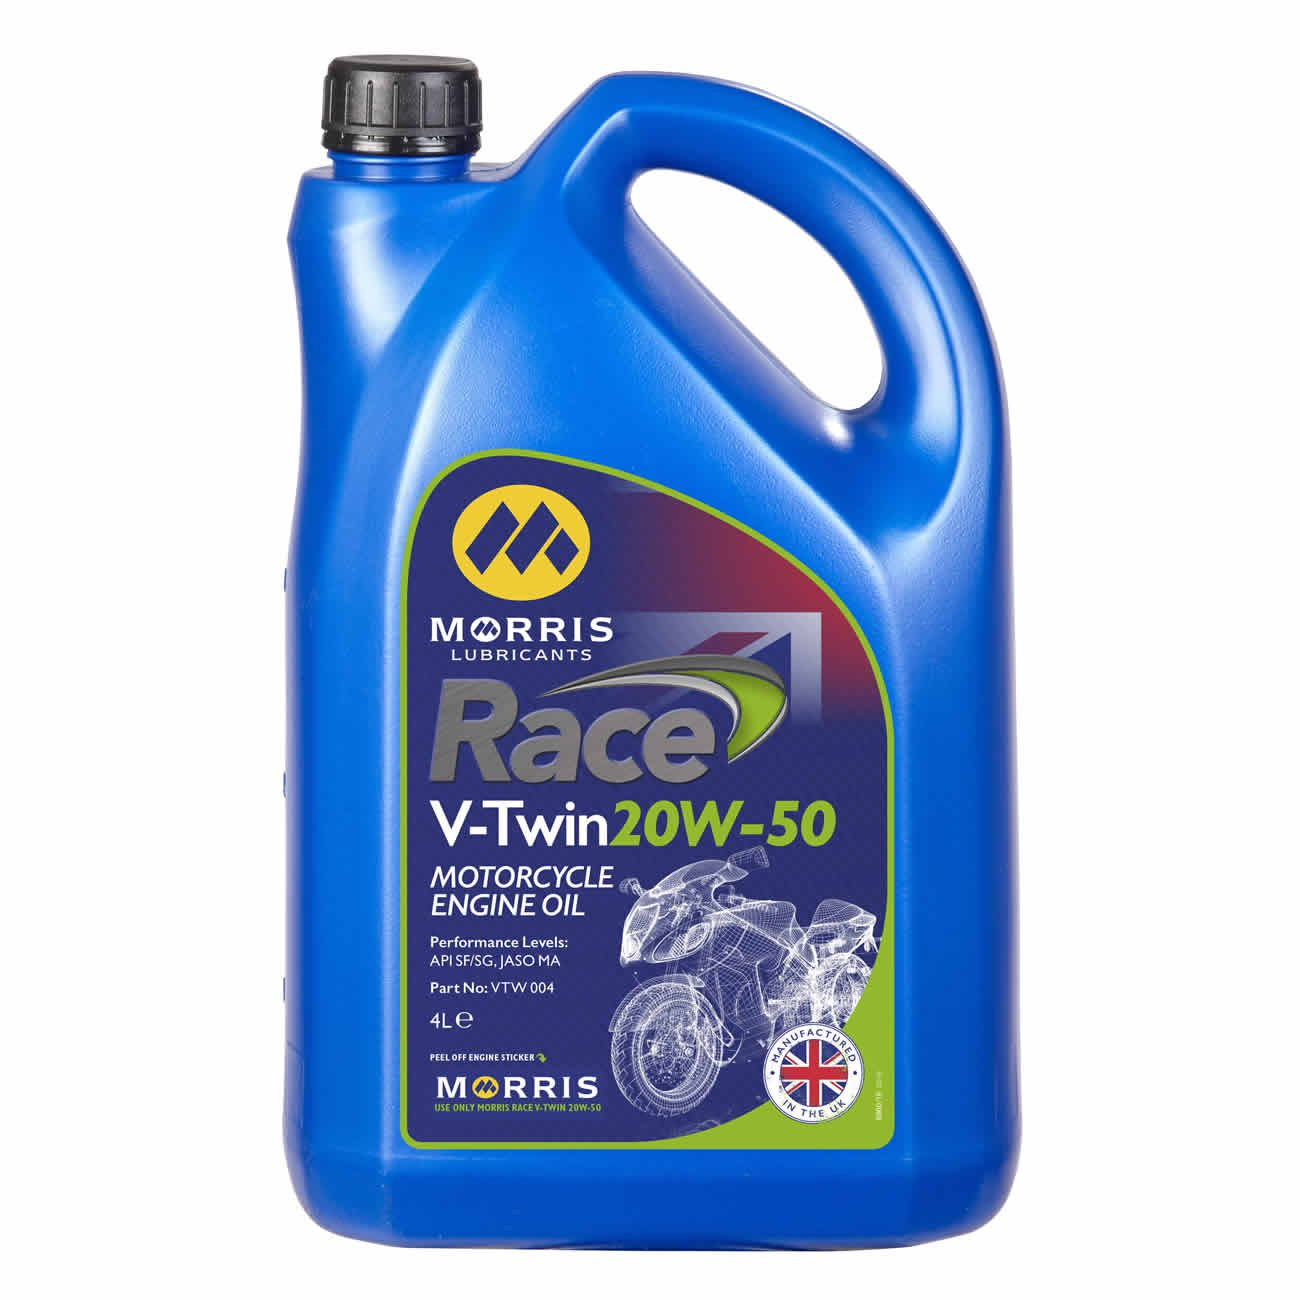 Race V Twin 20W-50, Engine Oil, Morris Lubricants - Averys Motorcycles